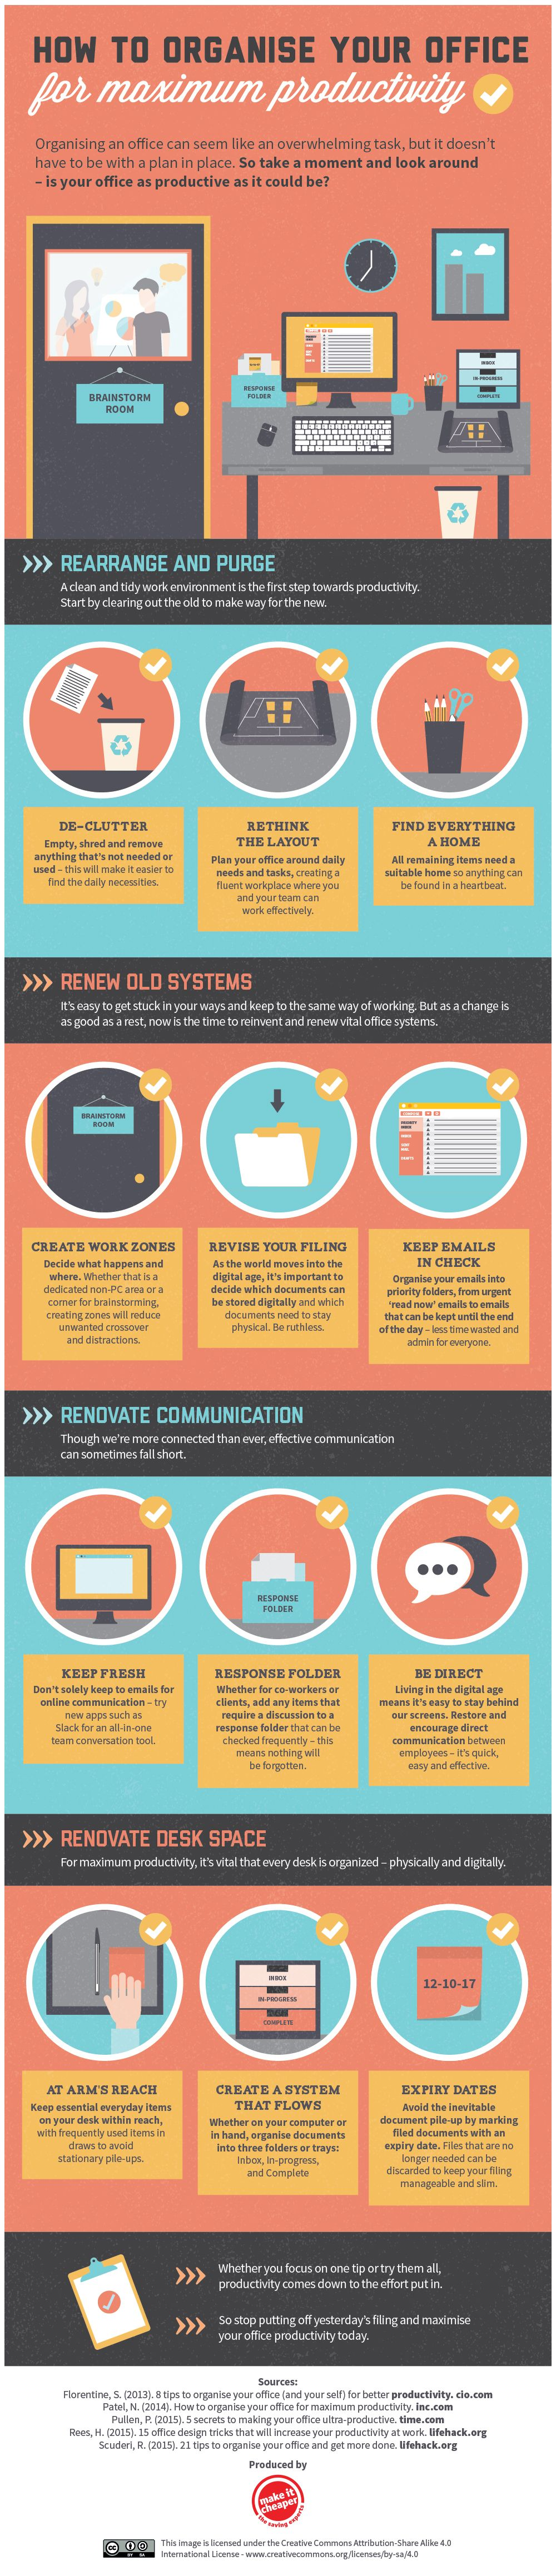 How to Organise Your Office for Maximum Productivity #infographic